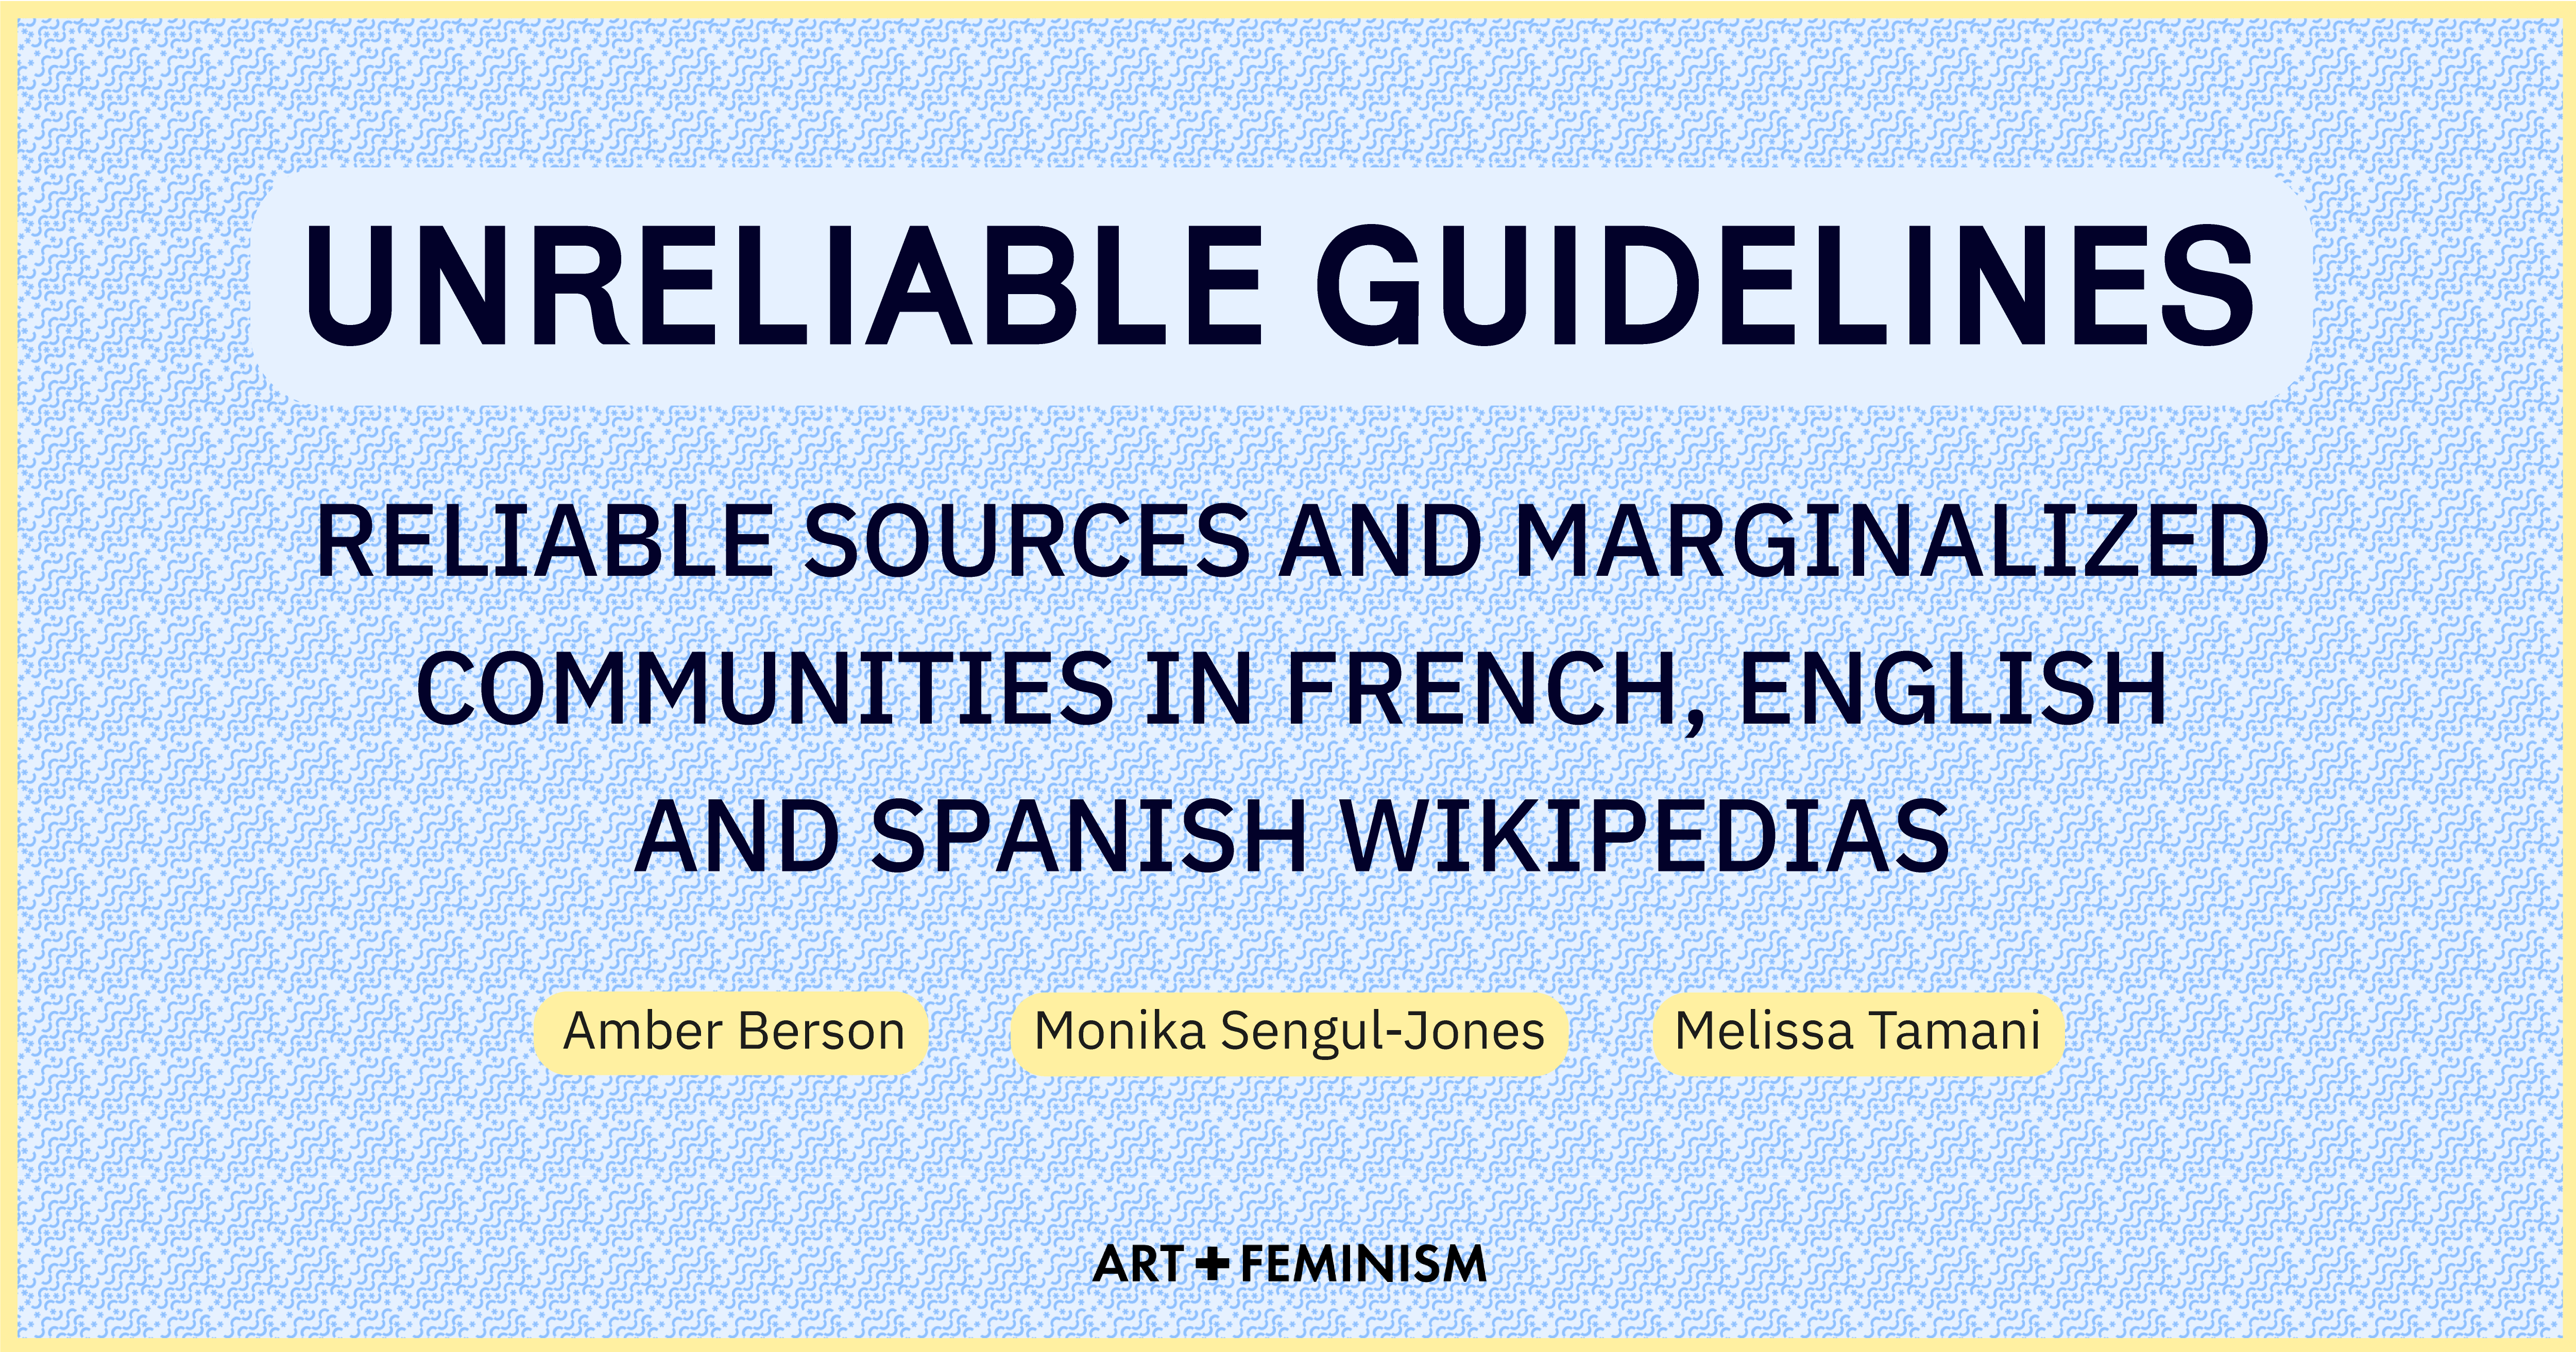 """Image with blue and white inside the envelope pattern background and a yellow outline.  Text in black reads in all caps: """"Unreliable Guidelines: Reliable Sources and marginalized communities in French, English and Spanish Wikipedia"""" in three yellow ovals beneath """"Amber Berson"""", """"Monika Sengul-Jones"""", and """"Melissa Tamani"""". The Art+Feminism logo is at the bottom."""